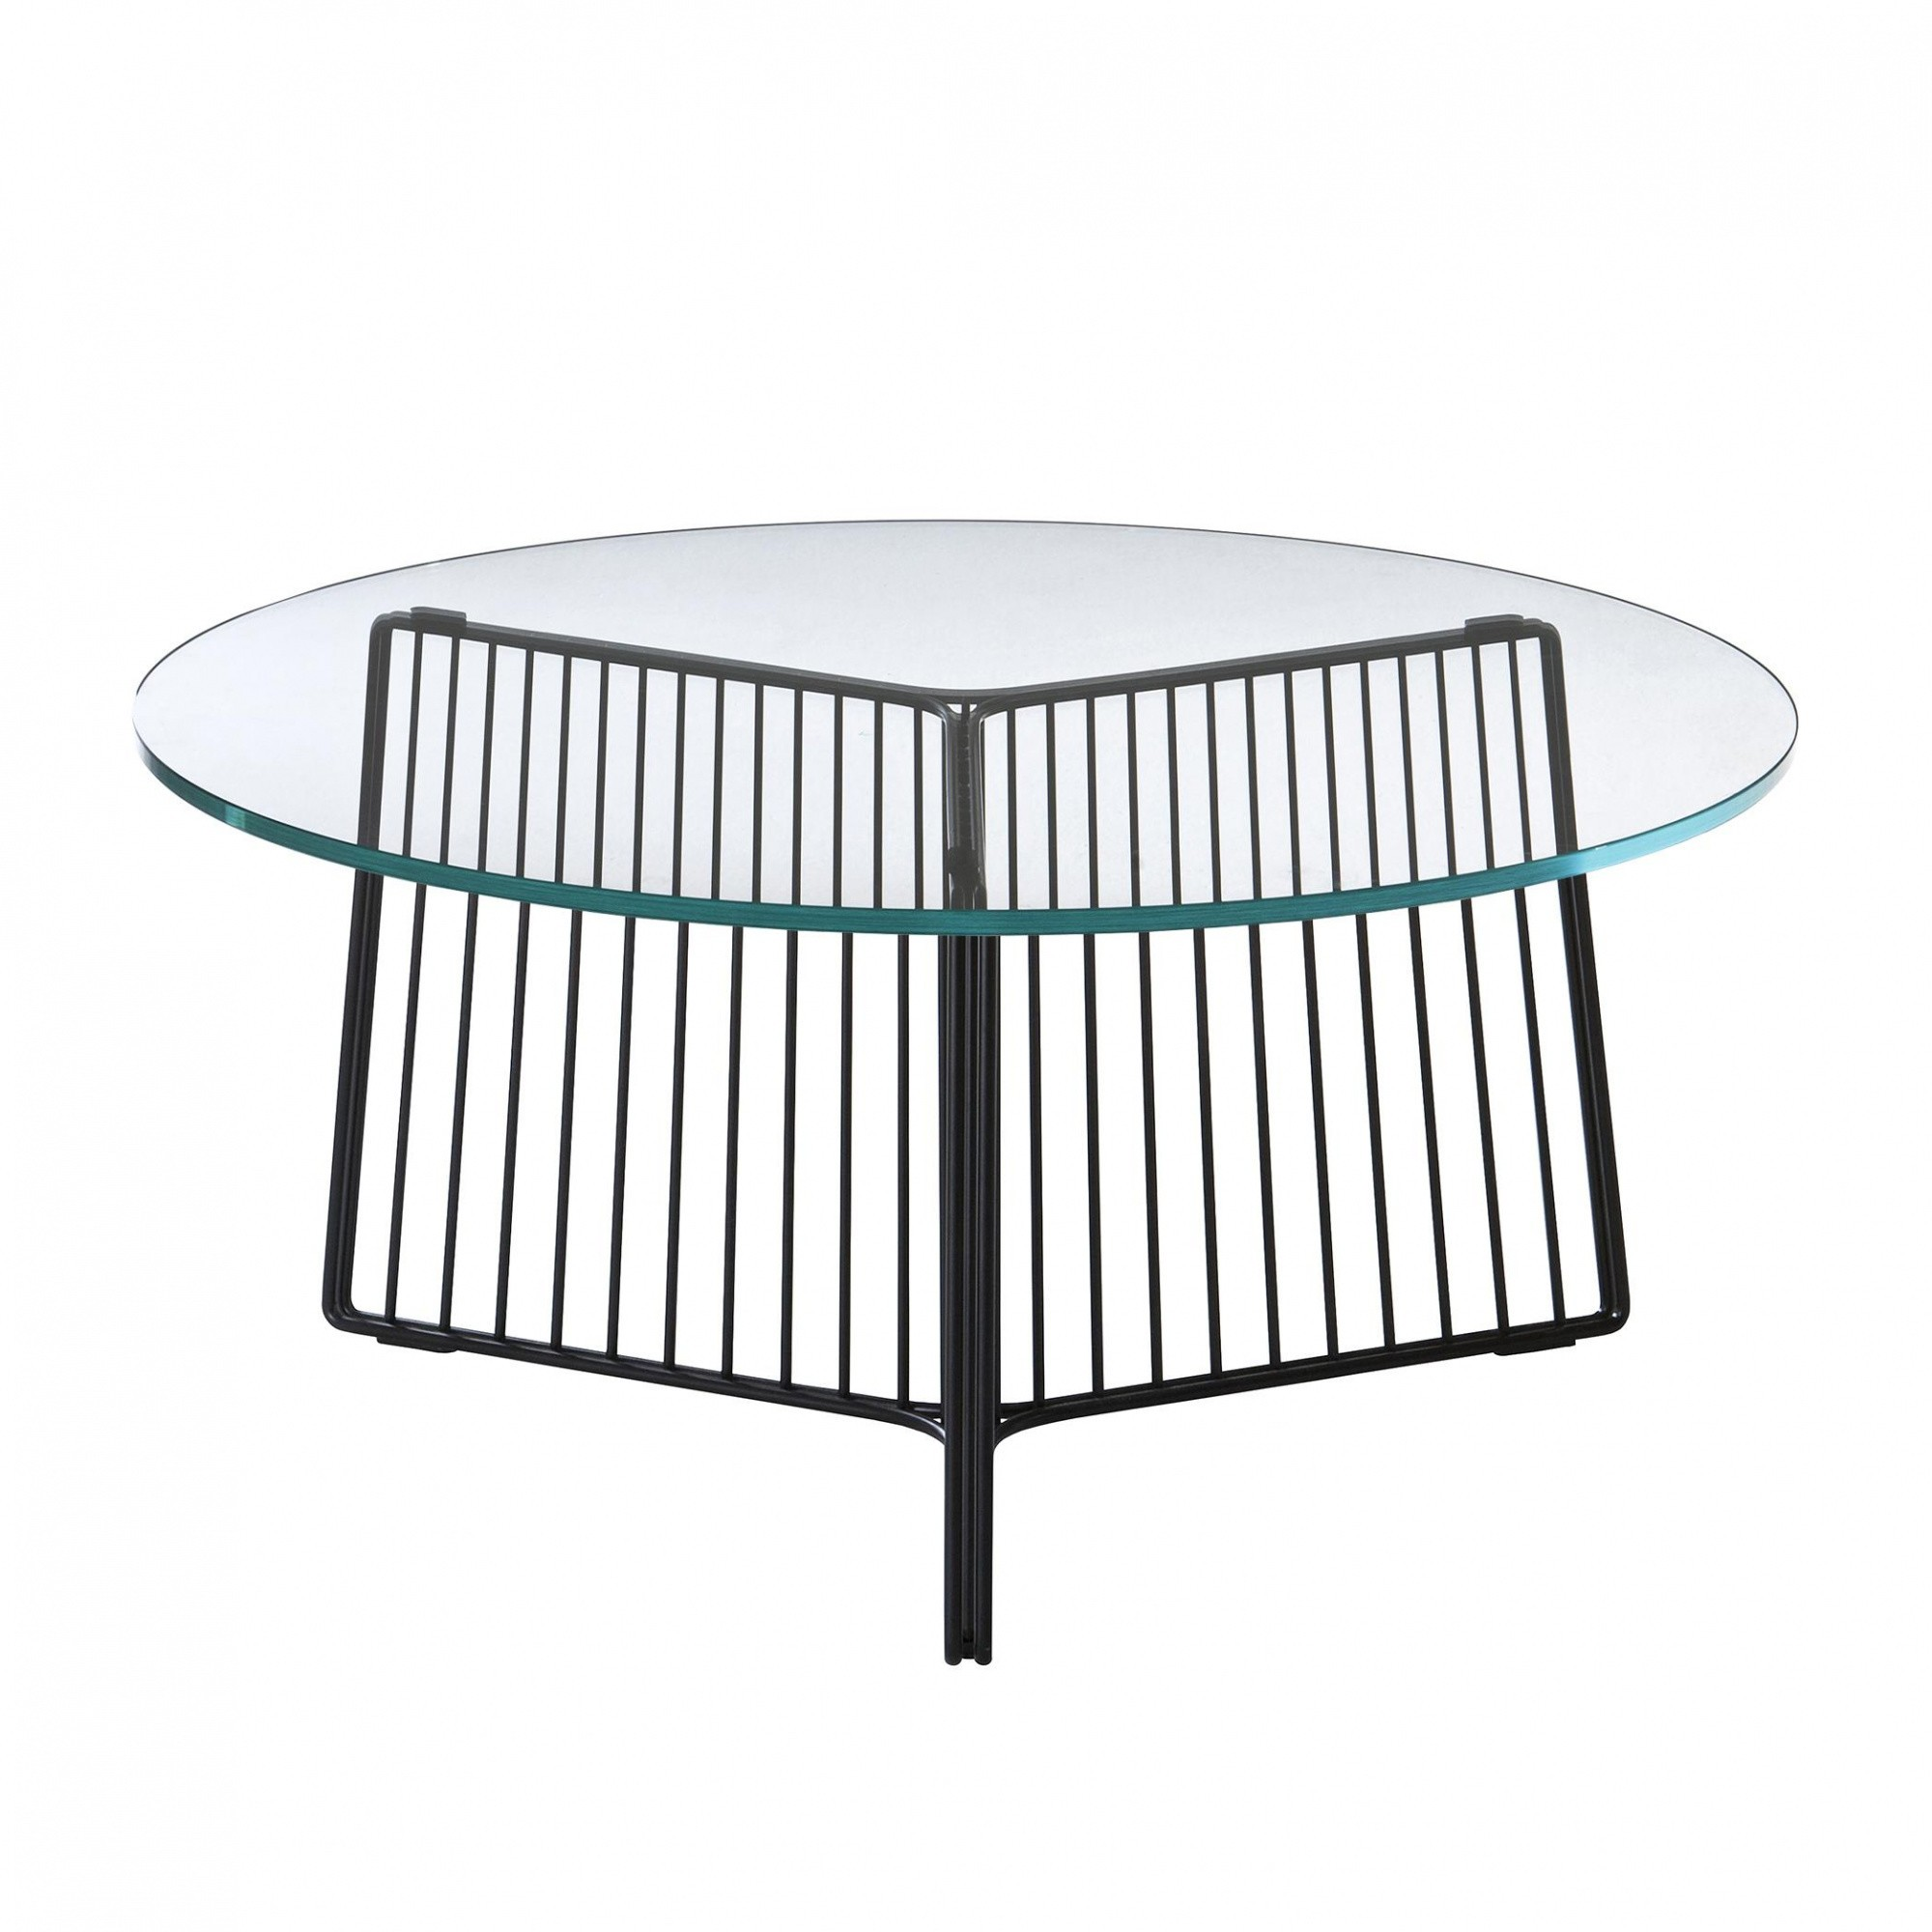 driade anapo coffee table ambientedirect  exclusive sale only for styleclub members